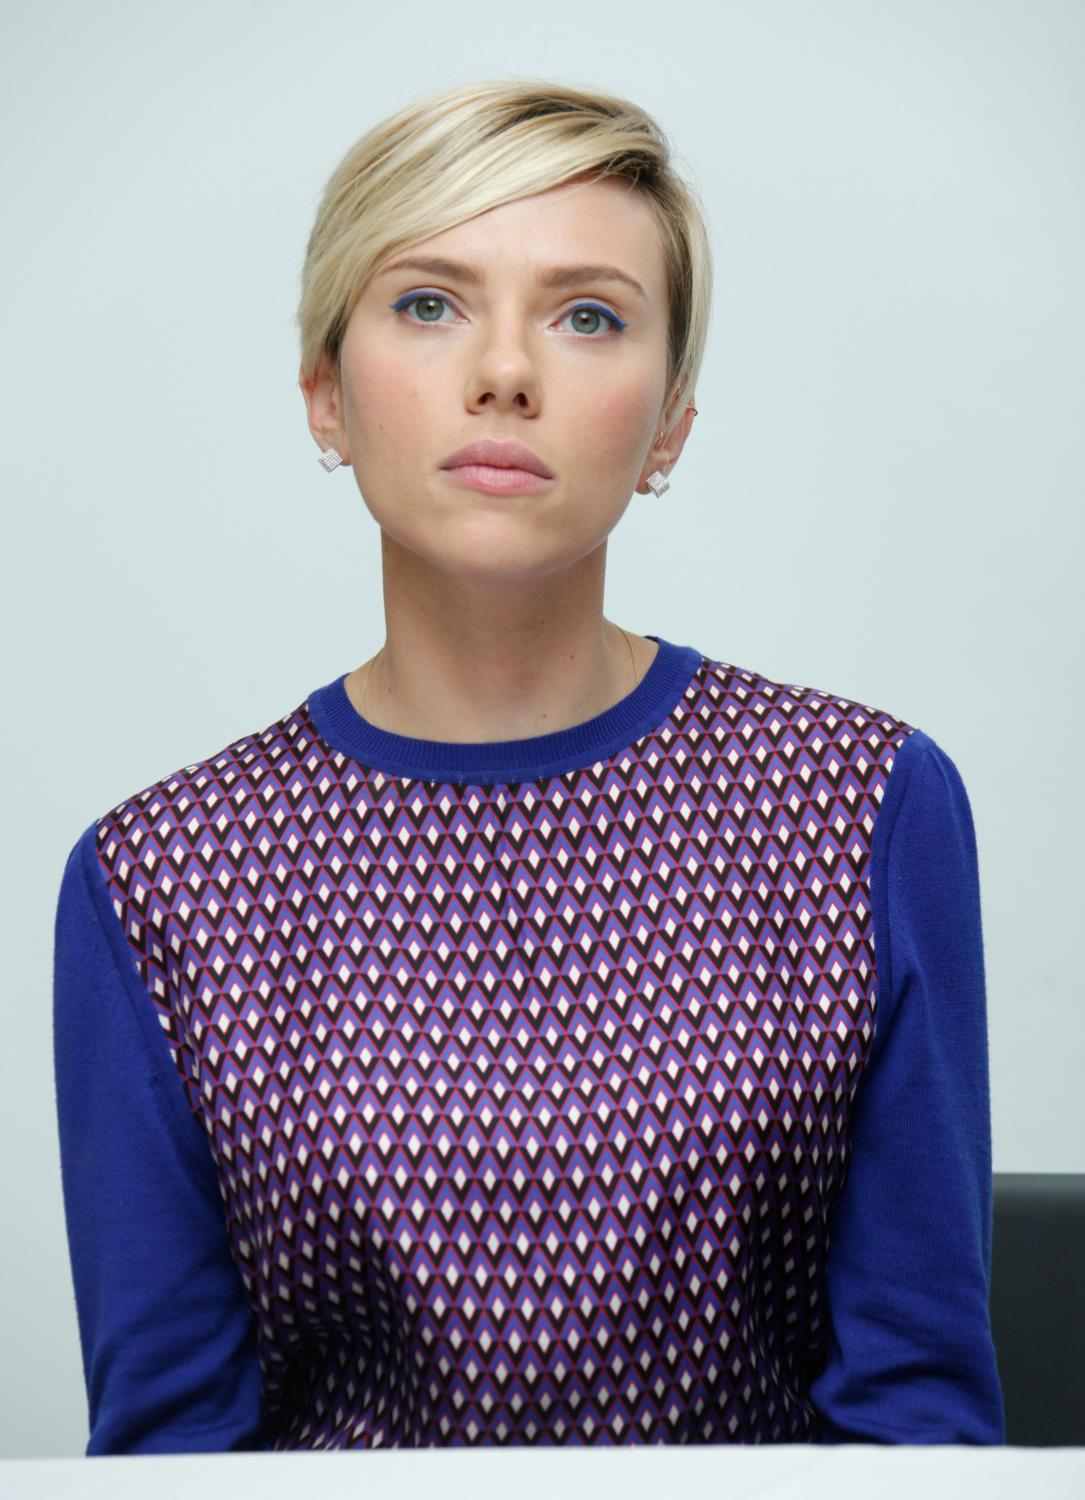 Scarlett Johansson at The Avengers: Age of Ultron Press Conference-1